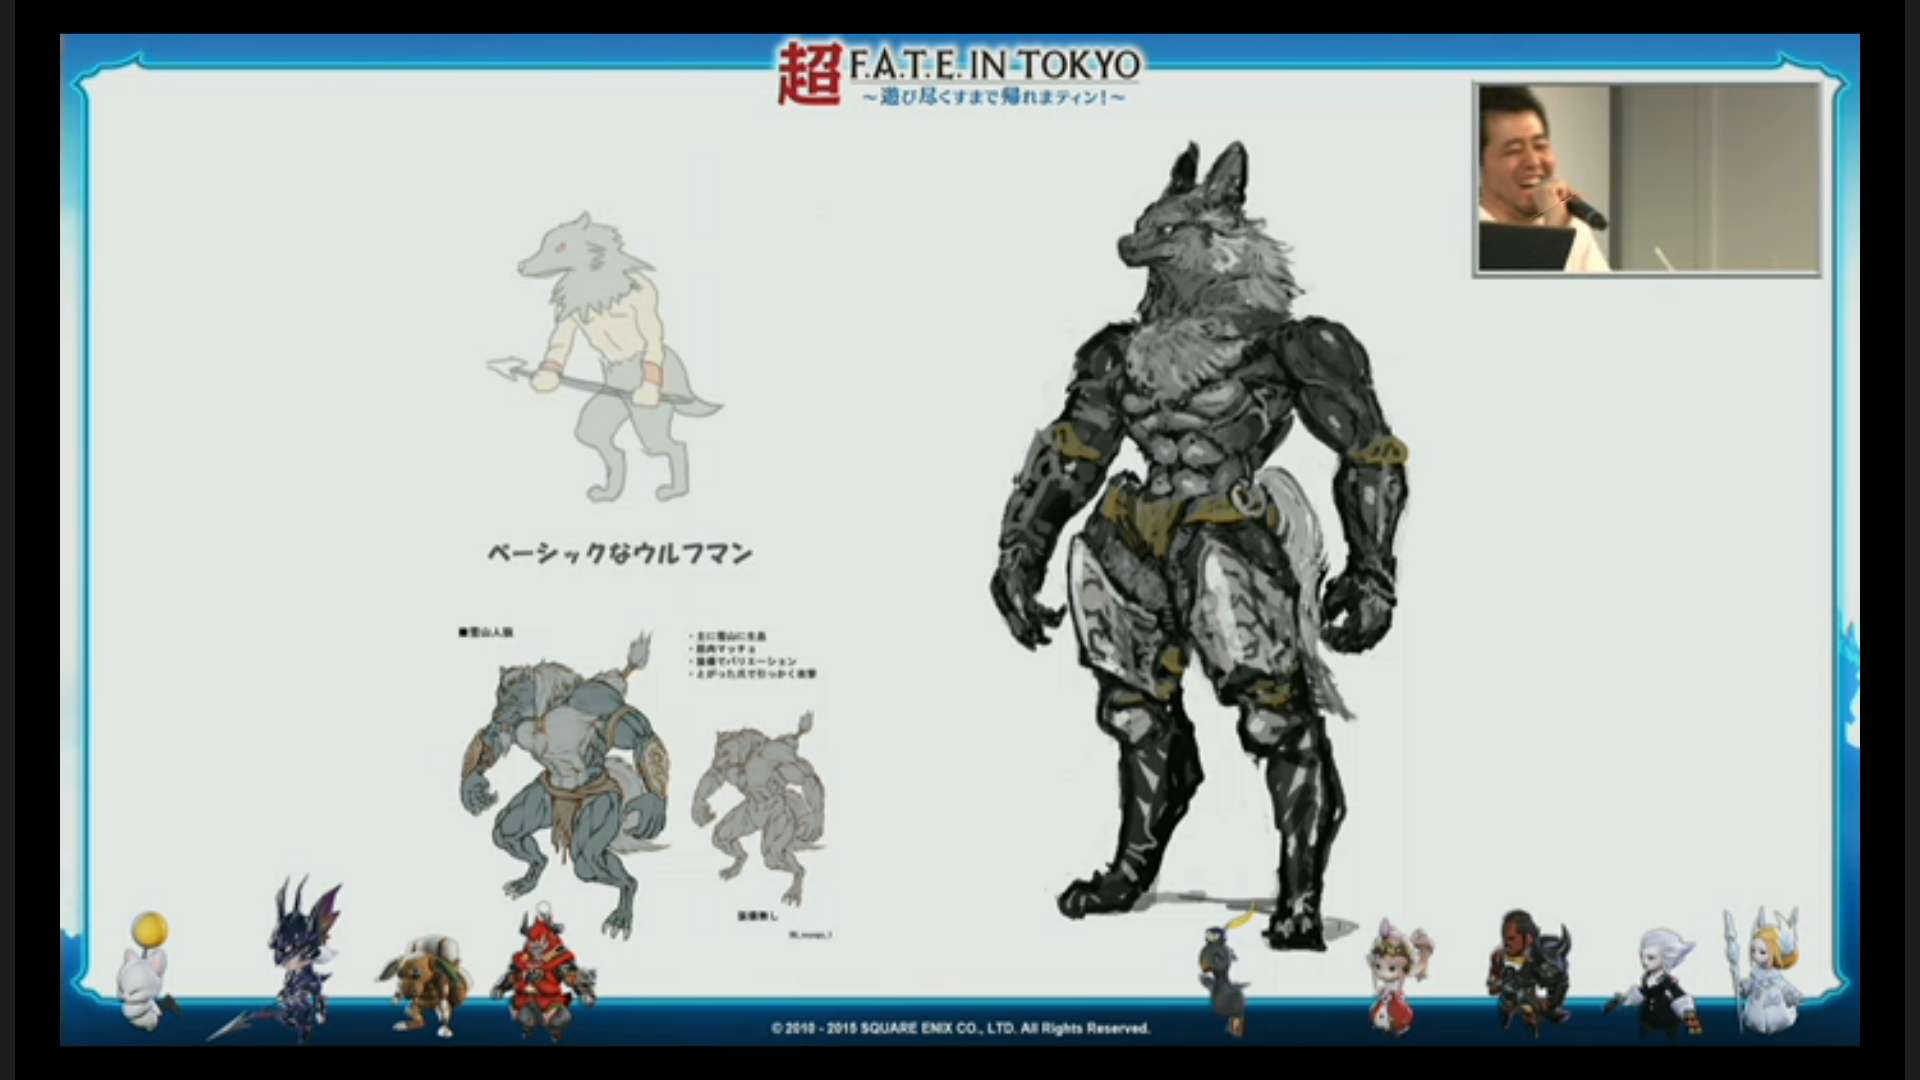 Final Fantasy XIVs New Race Check Out The Sexy And Monstrous Evolution From Viera To Au Ra NSFW